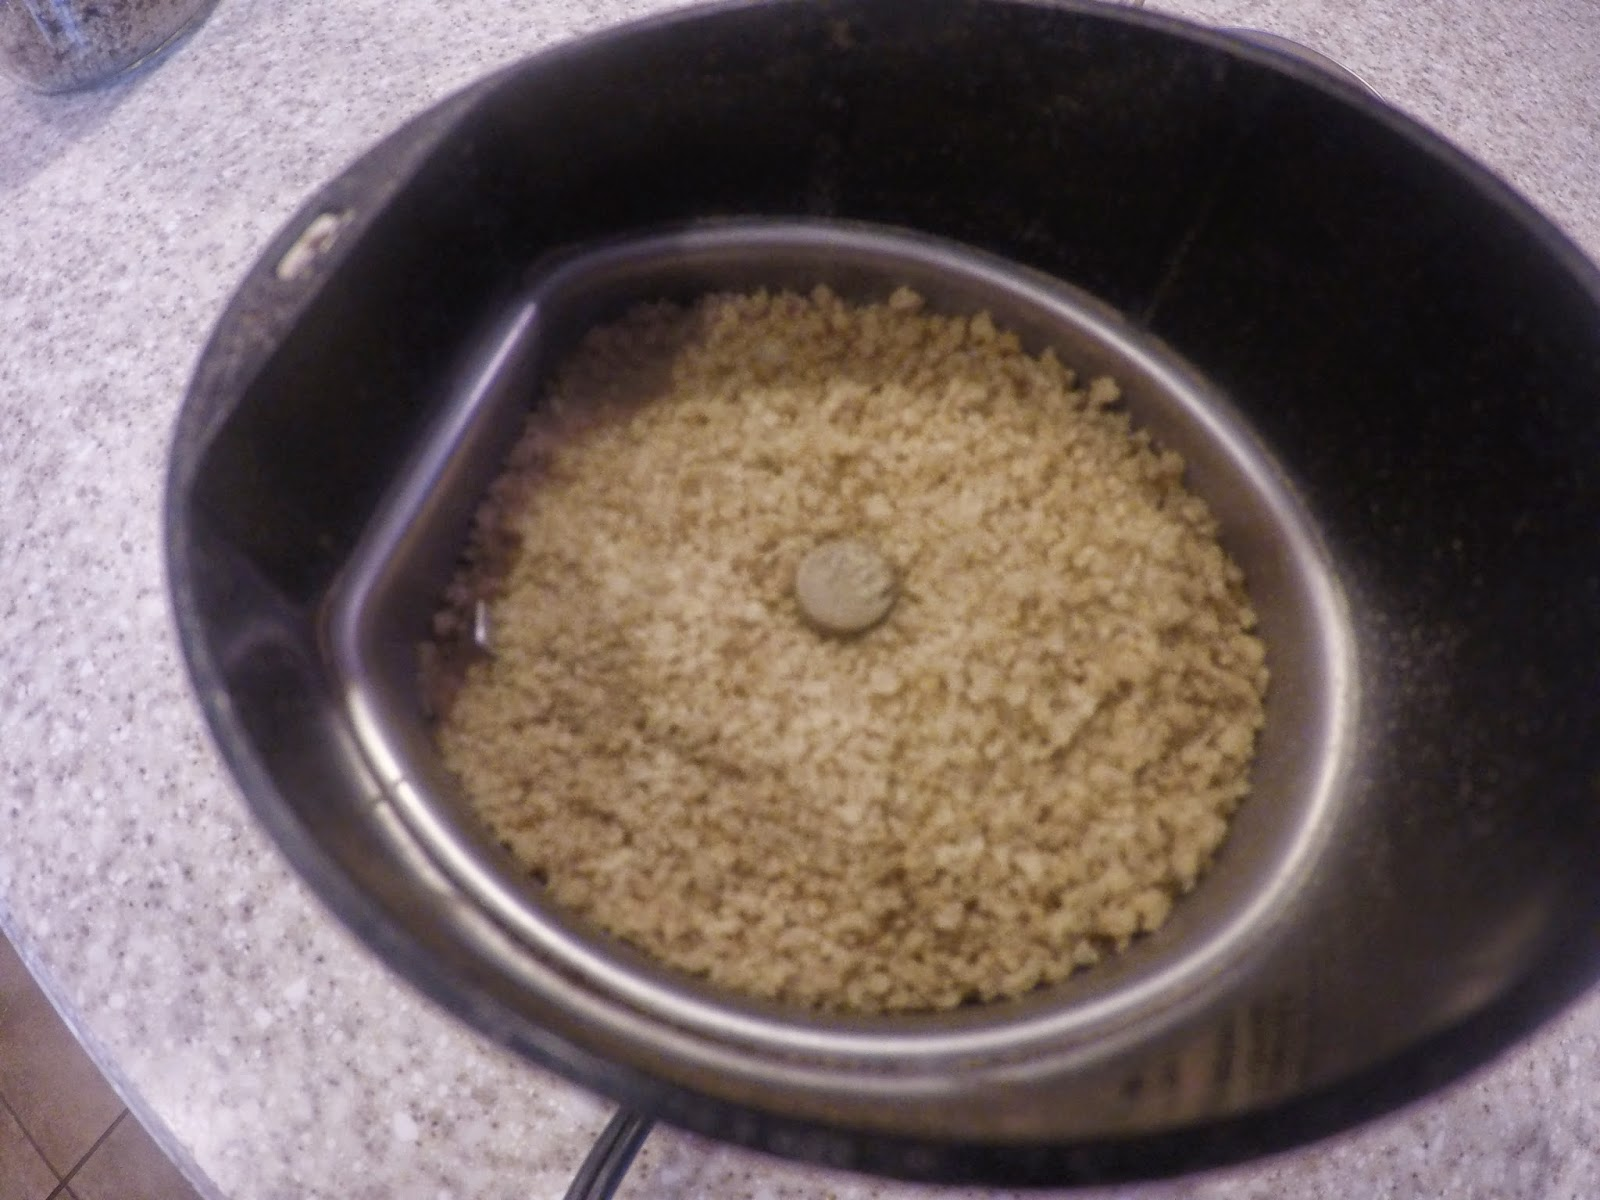 The Quinoa Should be Ground Slightly, Not Powdered